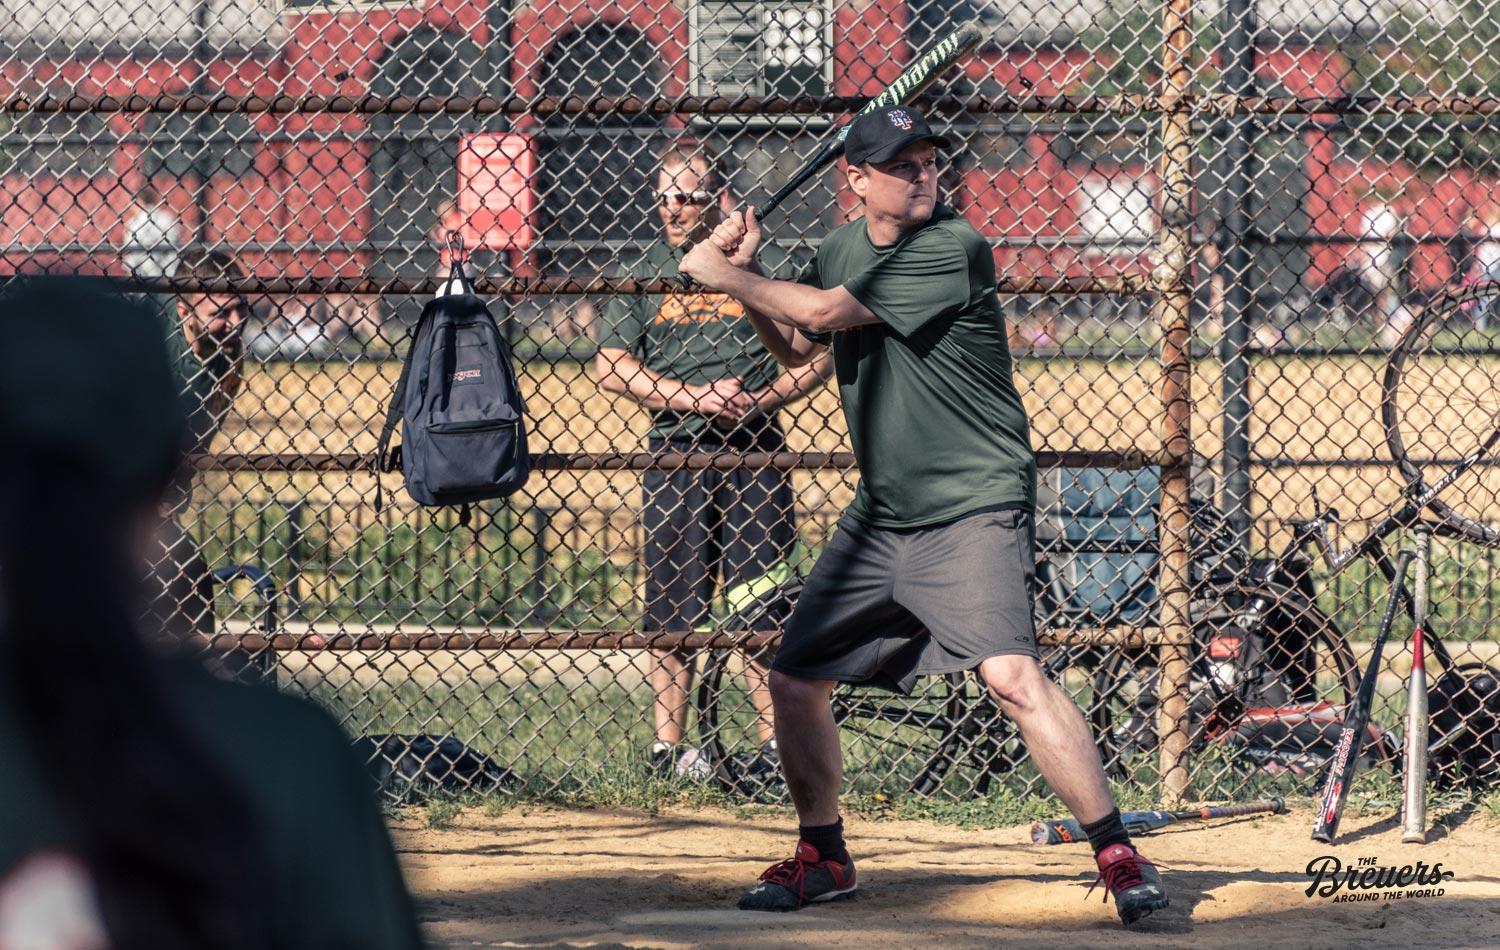 Baseball Spieler im Mc Carren Park in Williamsburg